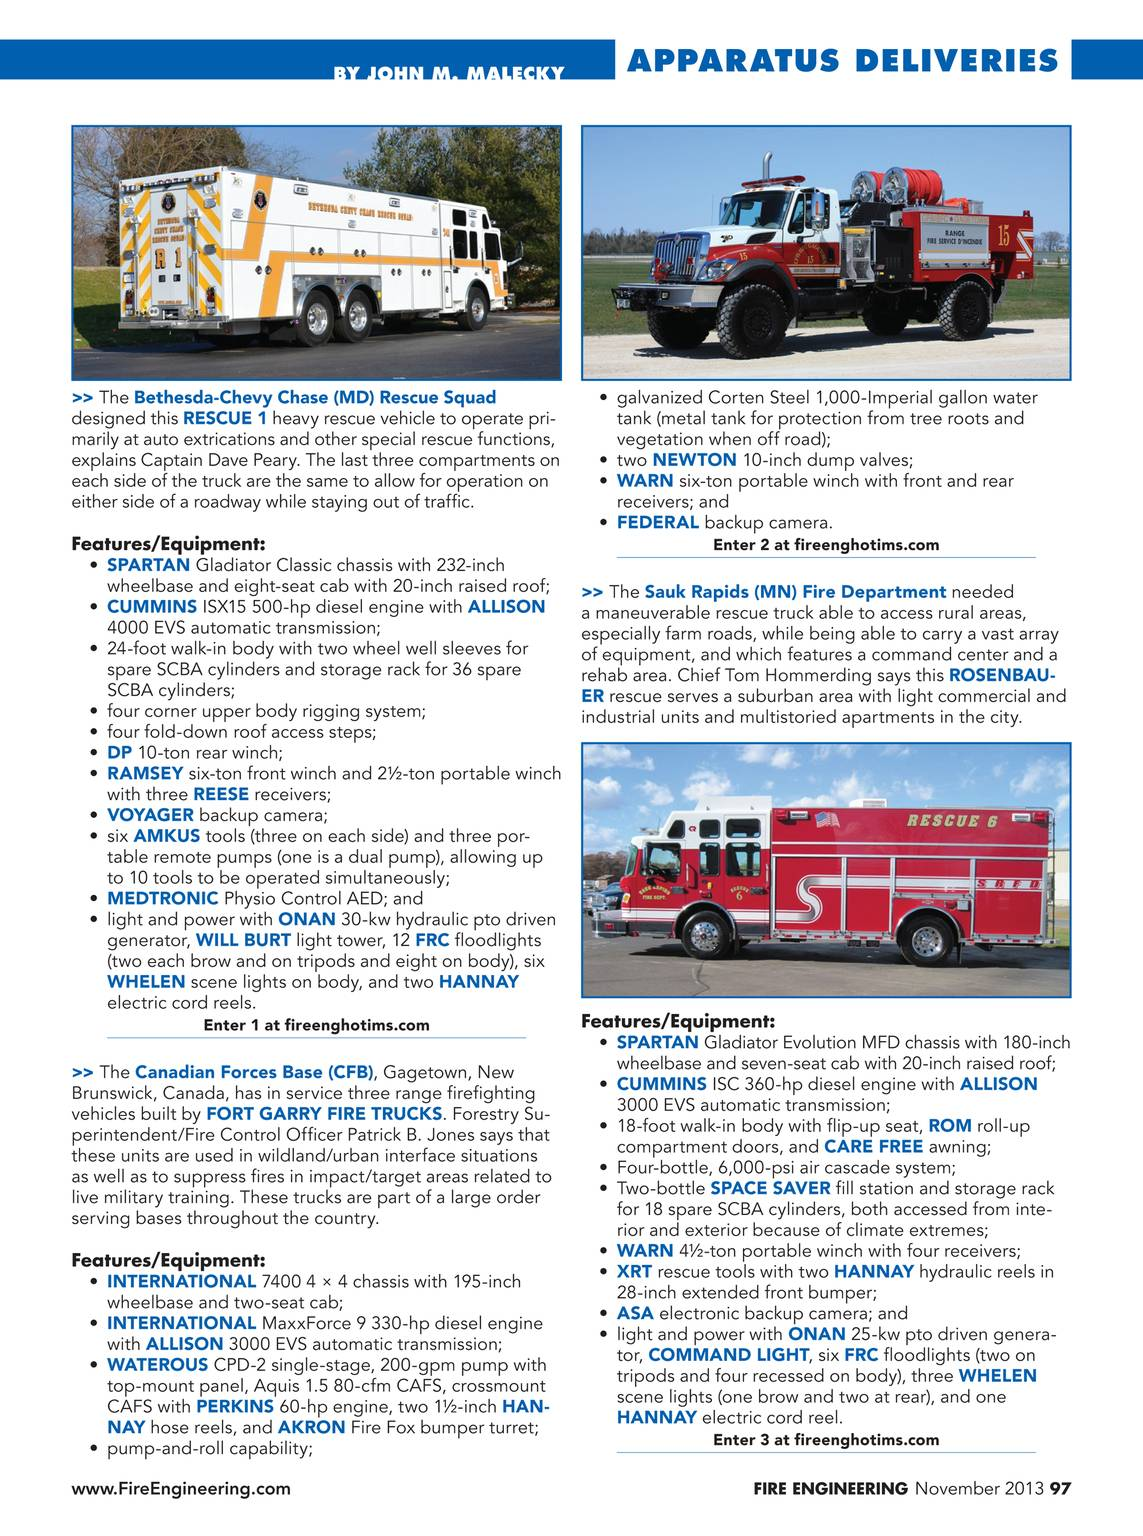 Fire Engineering - November 2013 - page 97